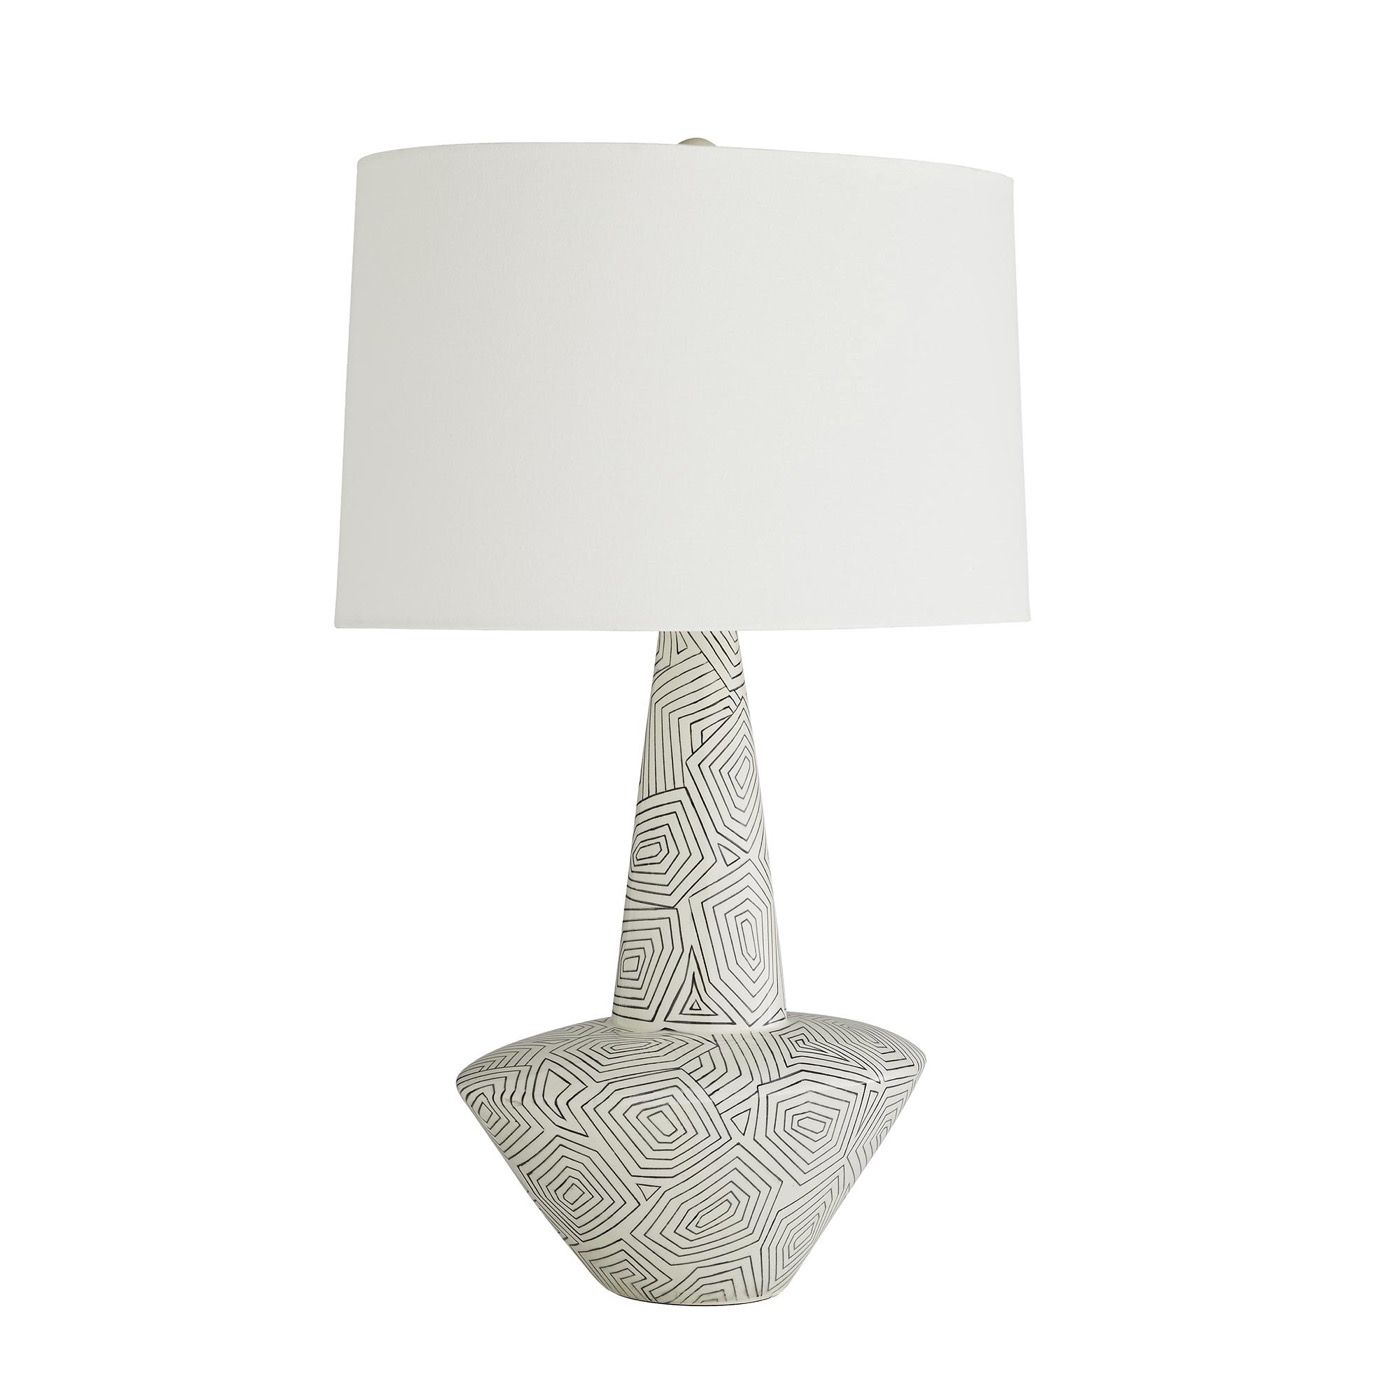 Malaga Ceramic Table Lamp